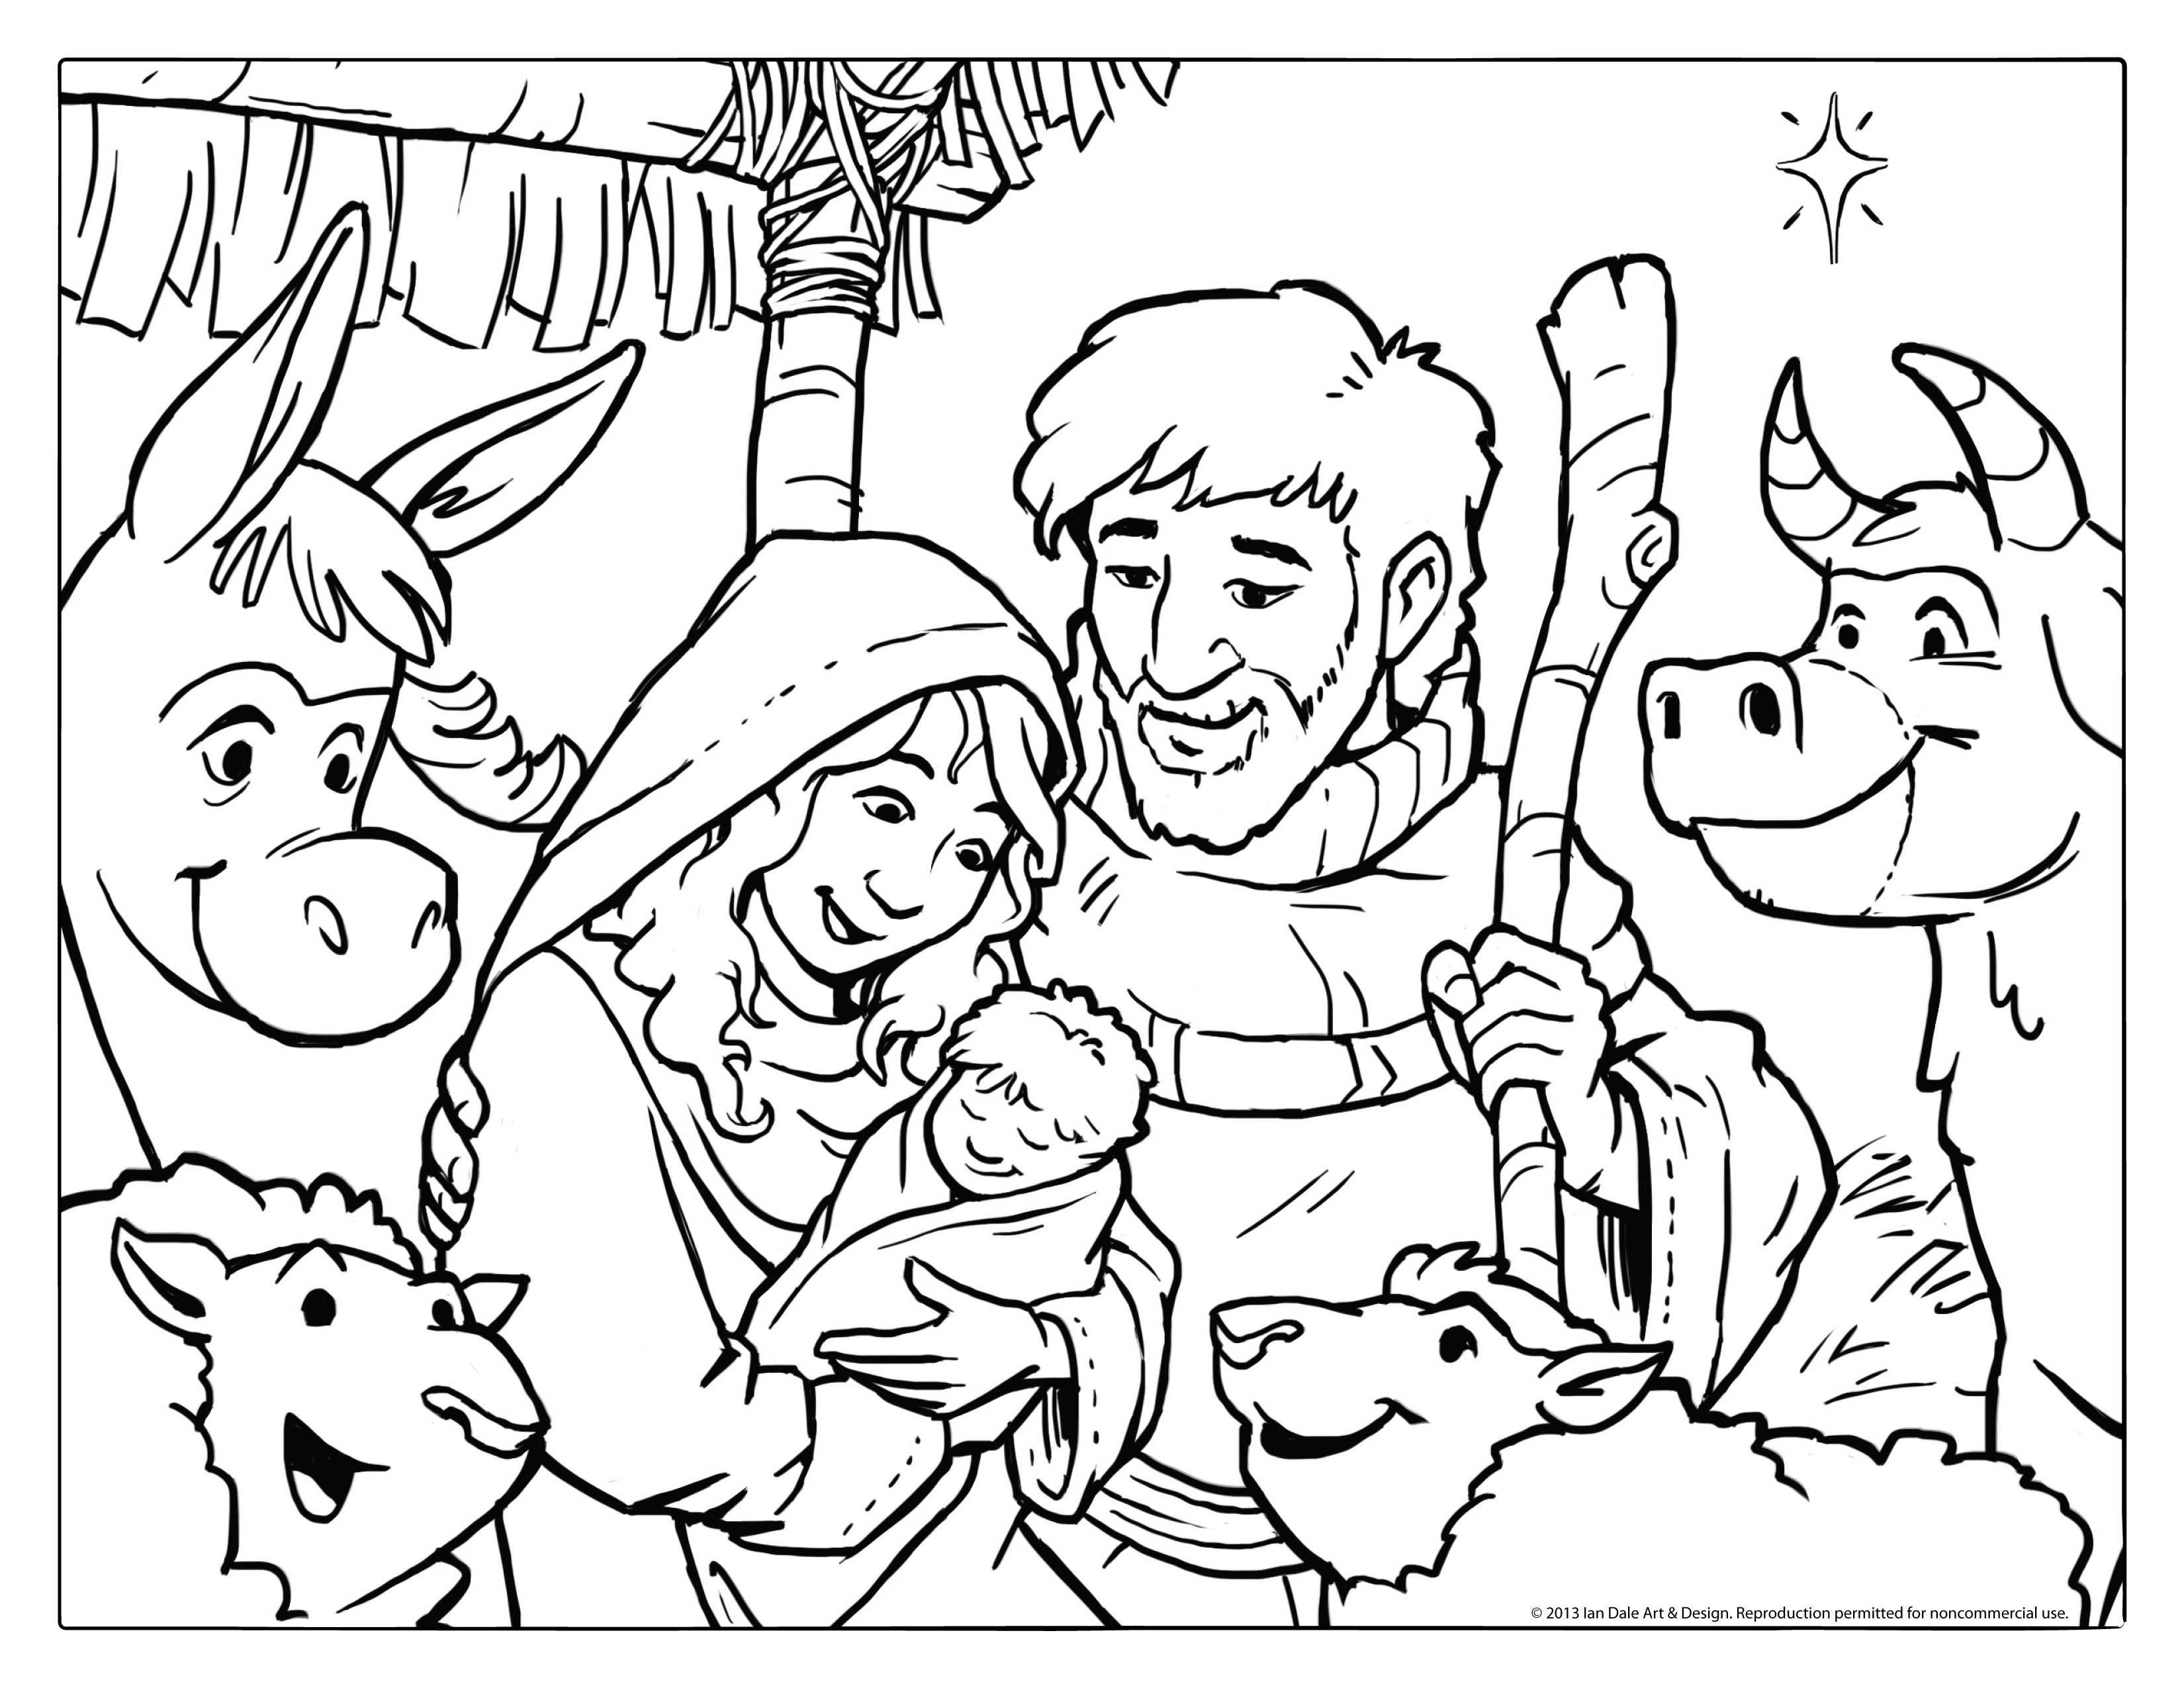 Pinalbertus Bayu Dwiananta On Coloring | Nativity Coloring Pages - Free Printable Pictures Of Nativity Scenes